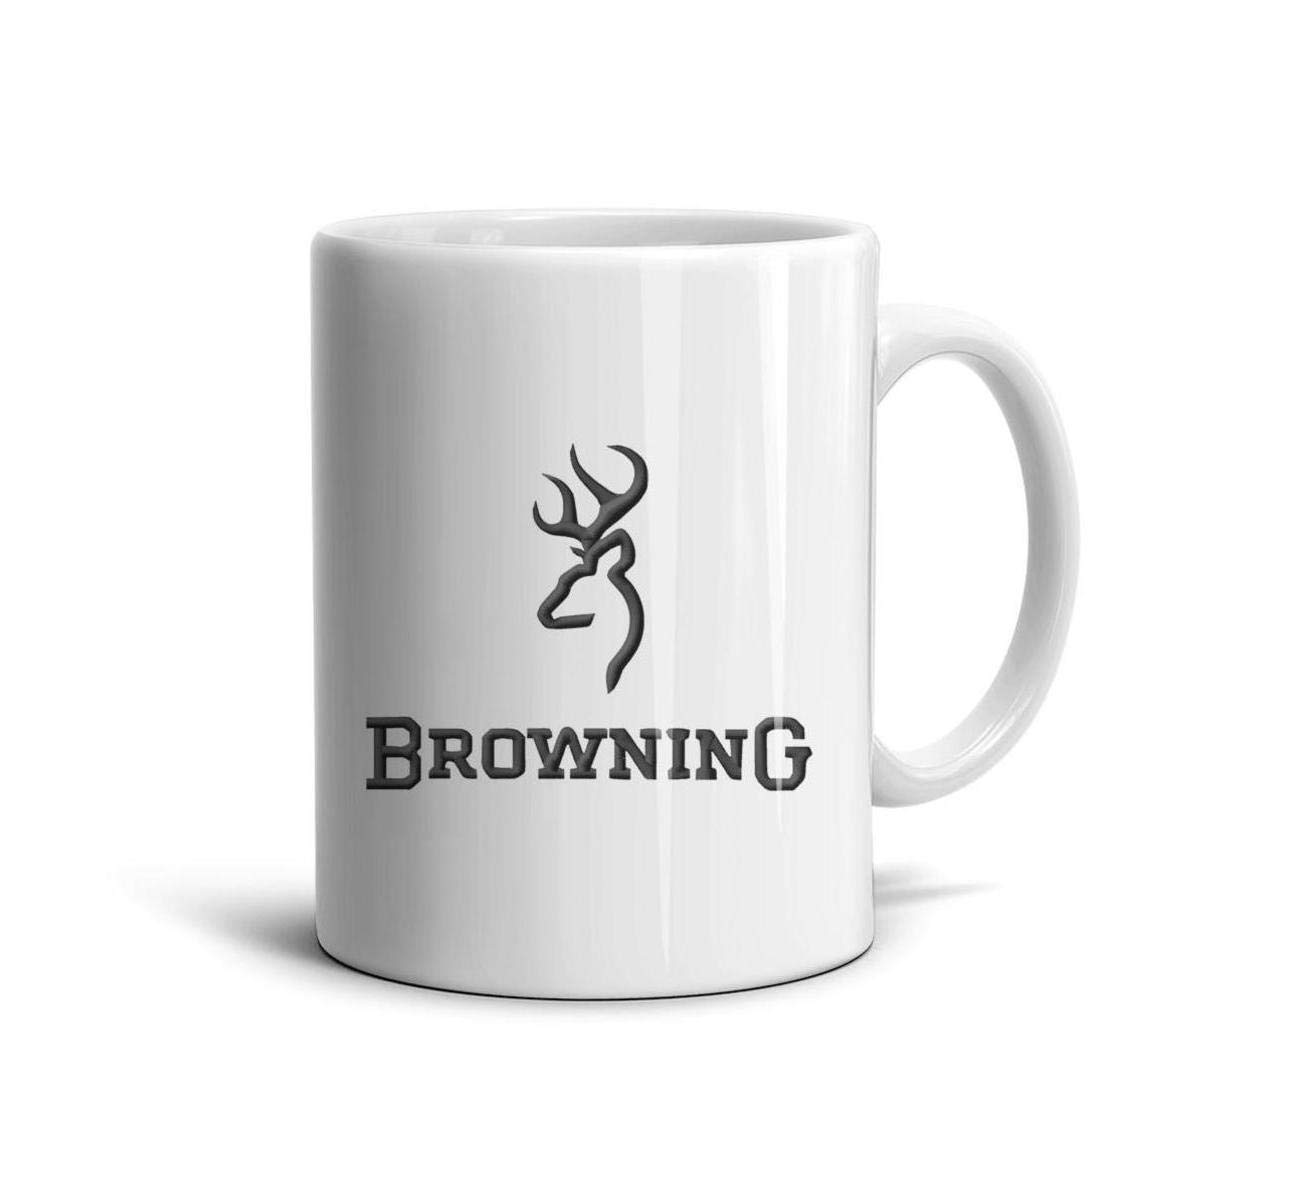 HIYITUTA Browning Clipart Coffee Or TeaMugs White Inspirational Mug 11 Oz White Ceramic Mugs Boyfriend Girls